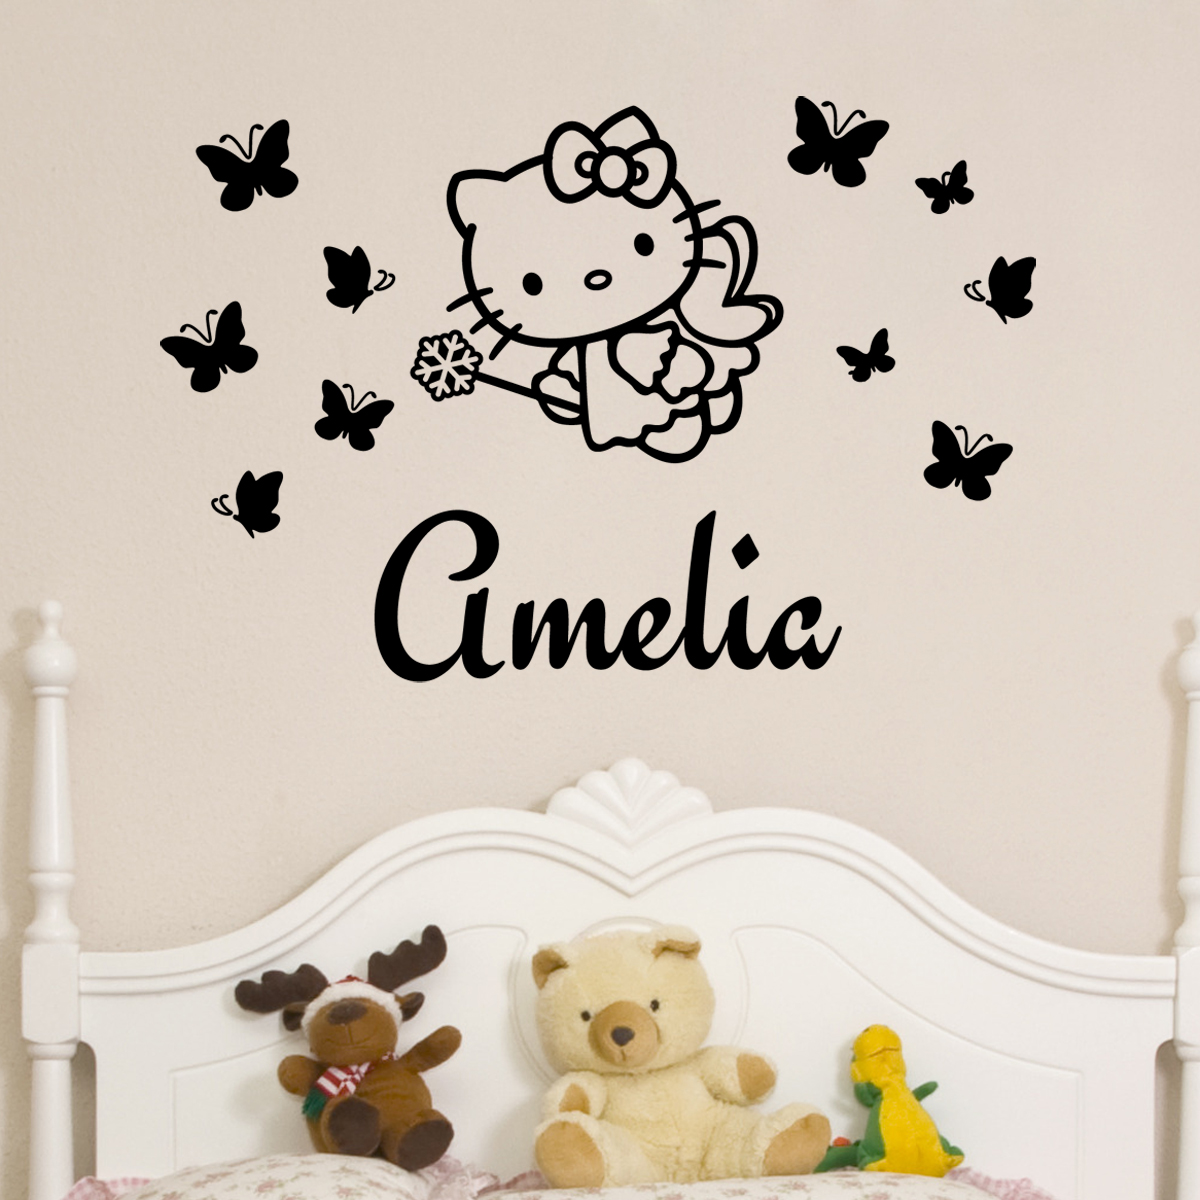 stickers muraux pour les enfants sticker personnalis. Black Bedroom Furniture Sets. Home Design Ideas